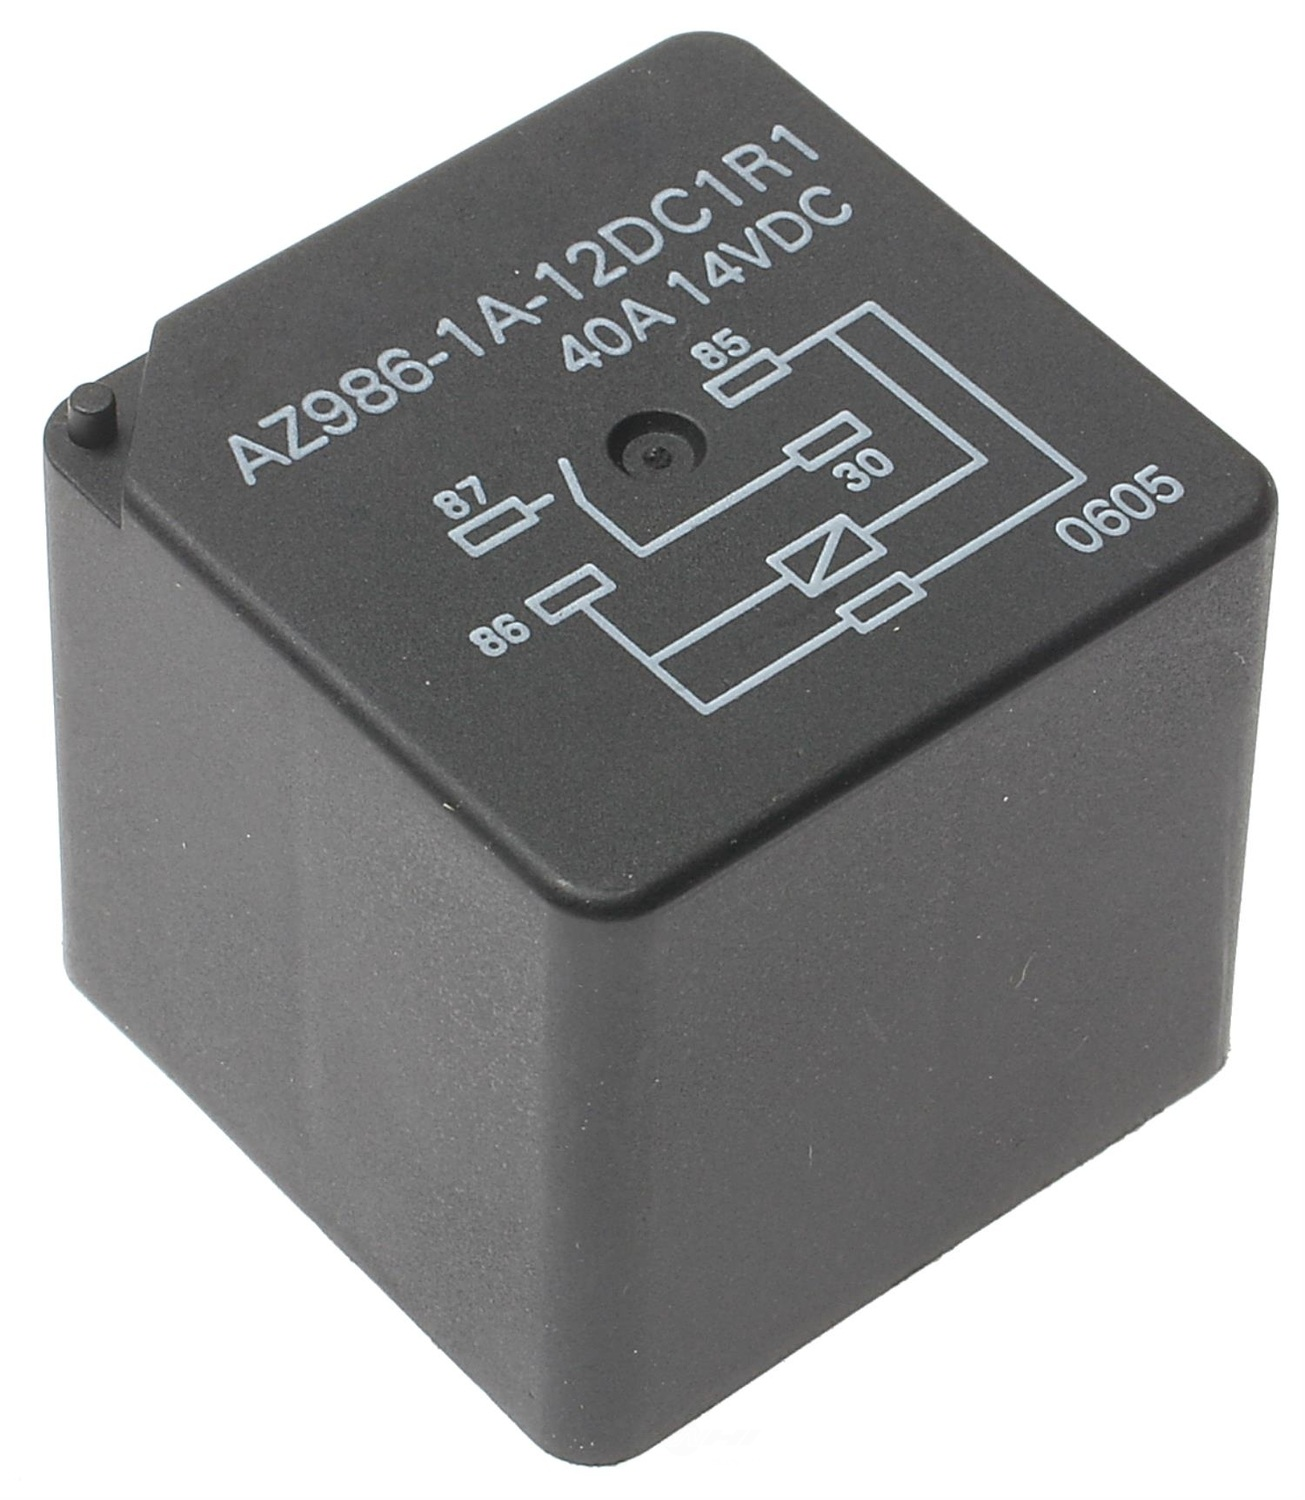 ACDELCO GOLD/PROFESSIONAL - Rear Window Defogger Relay - DCC D1741C